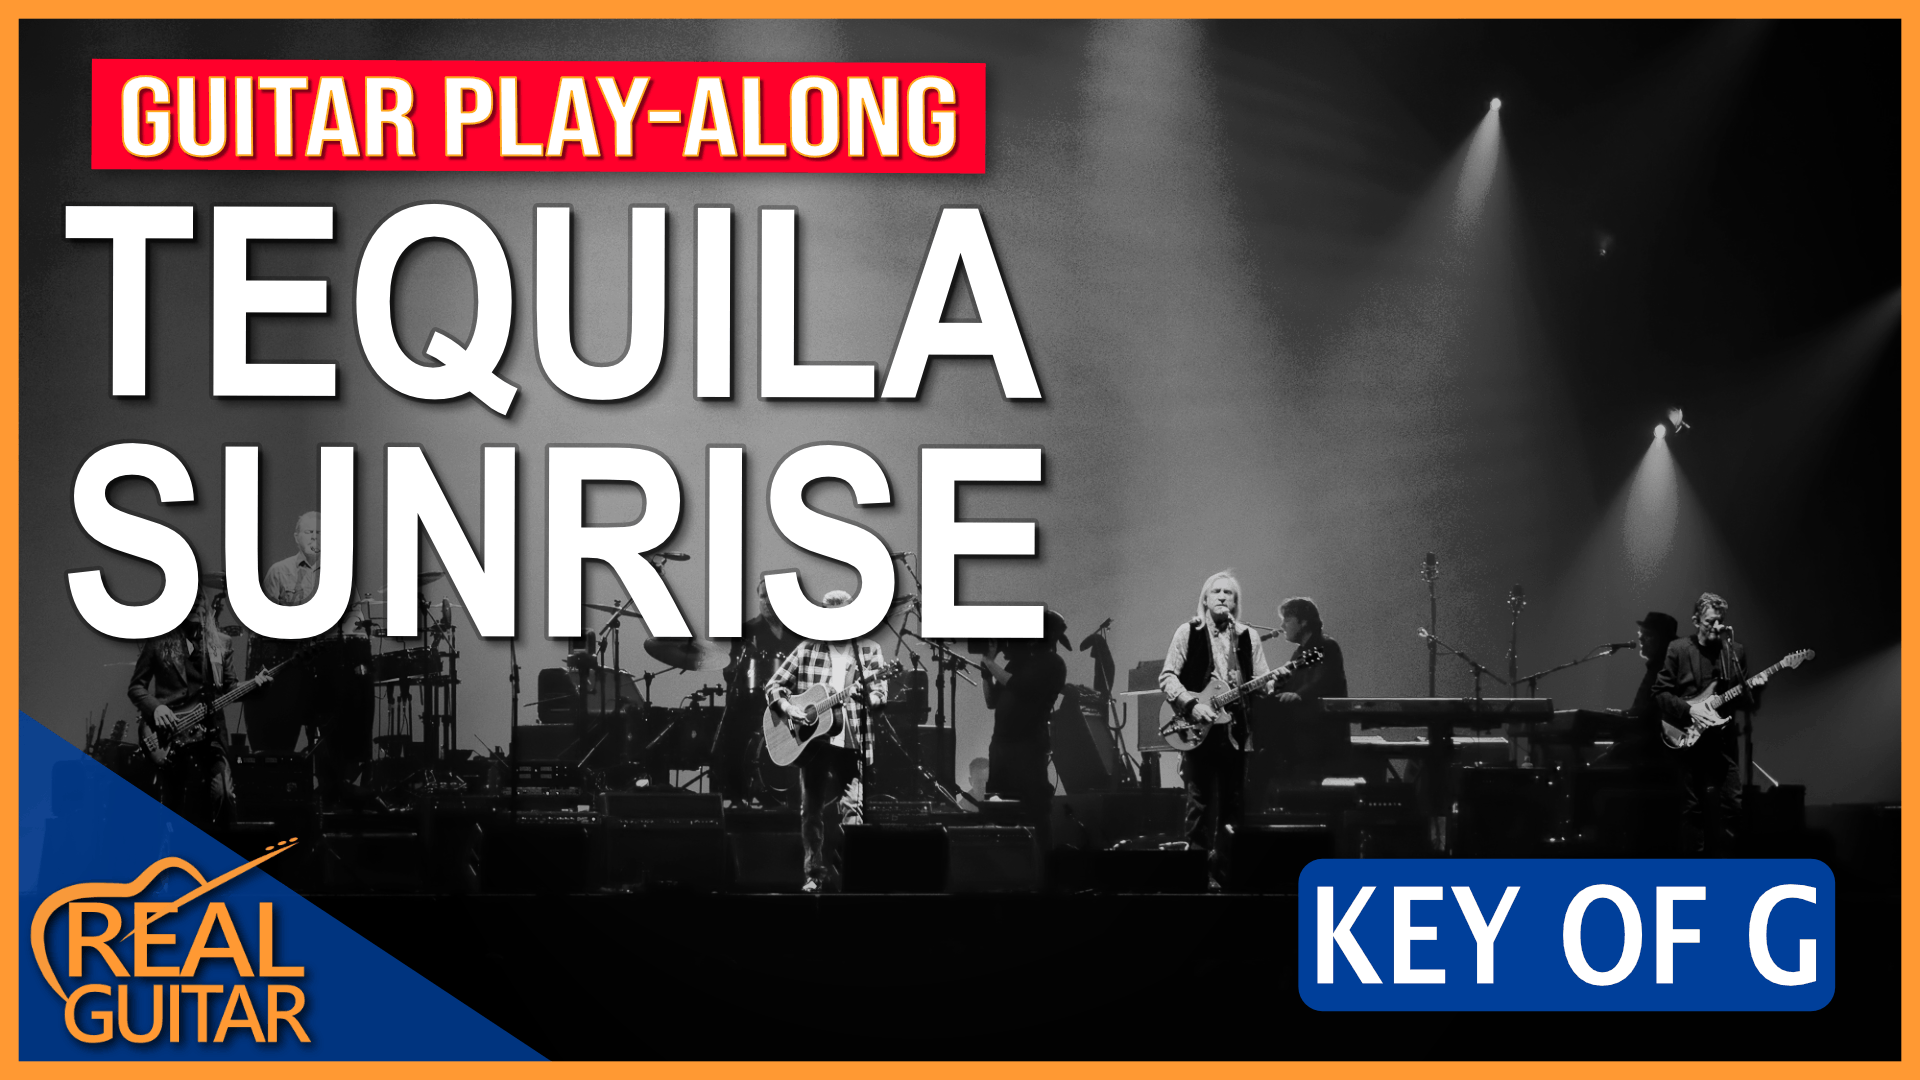 TEQUILA SUNRISE GUITAR PLAY-ALONG